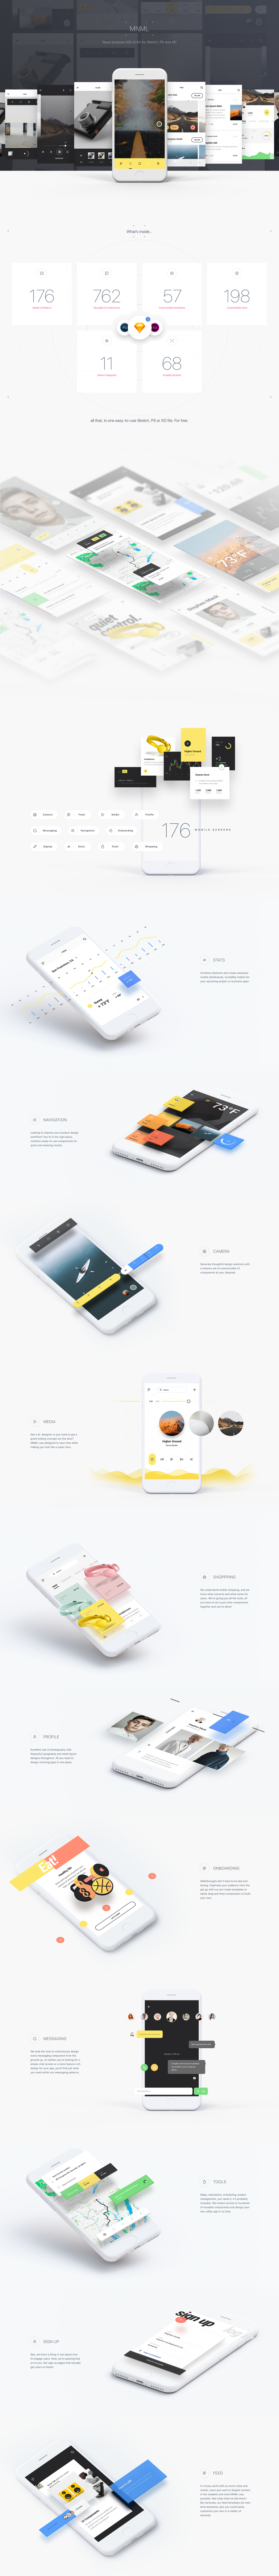 MNML – Free Multi-purpose iOS UI Kit for Sketch, PS & XD